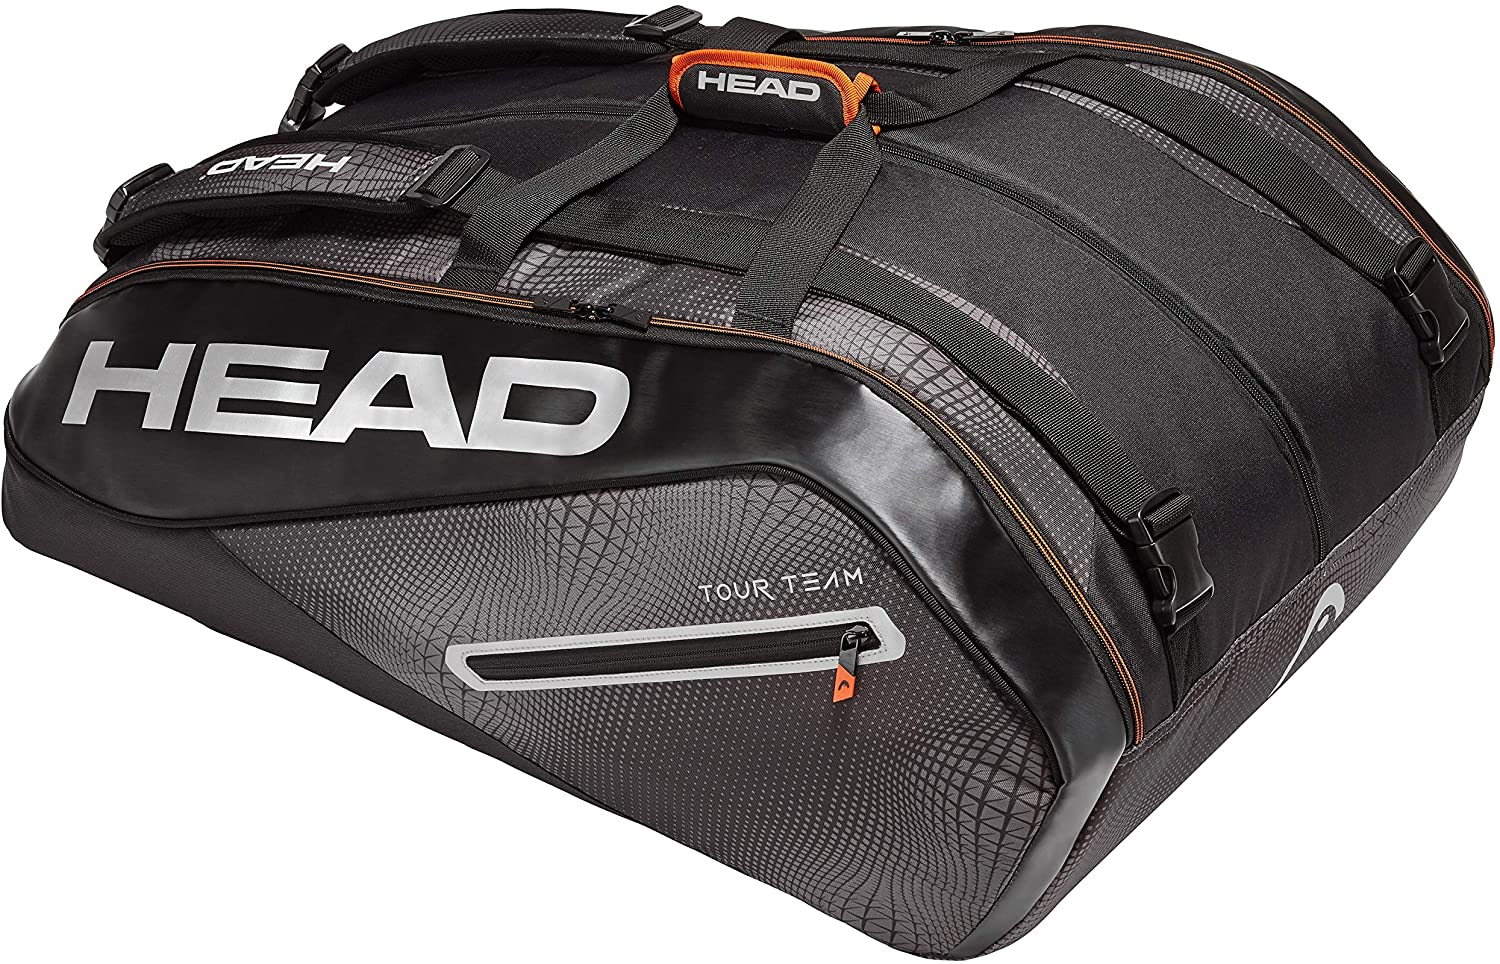 HEAD Tour Team 15R Mega Combi black-silver